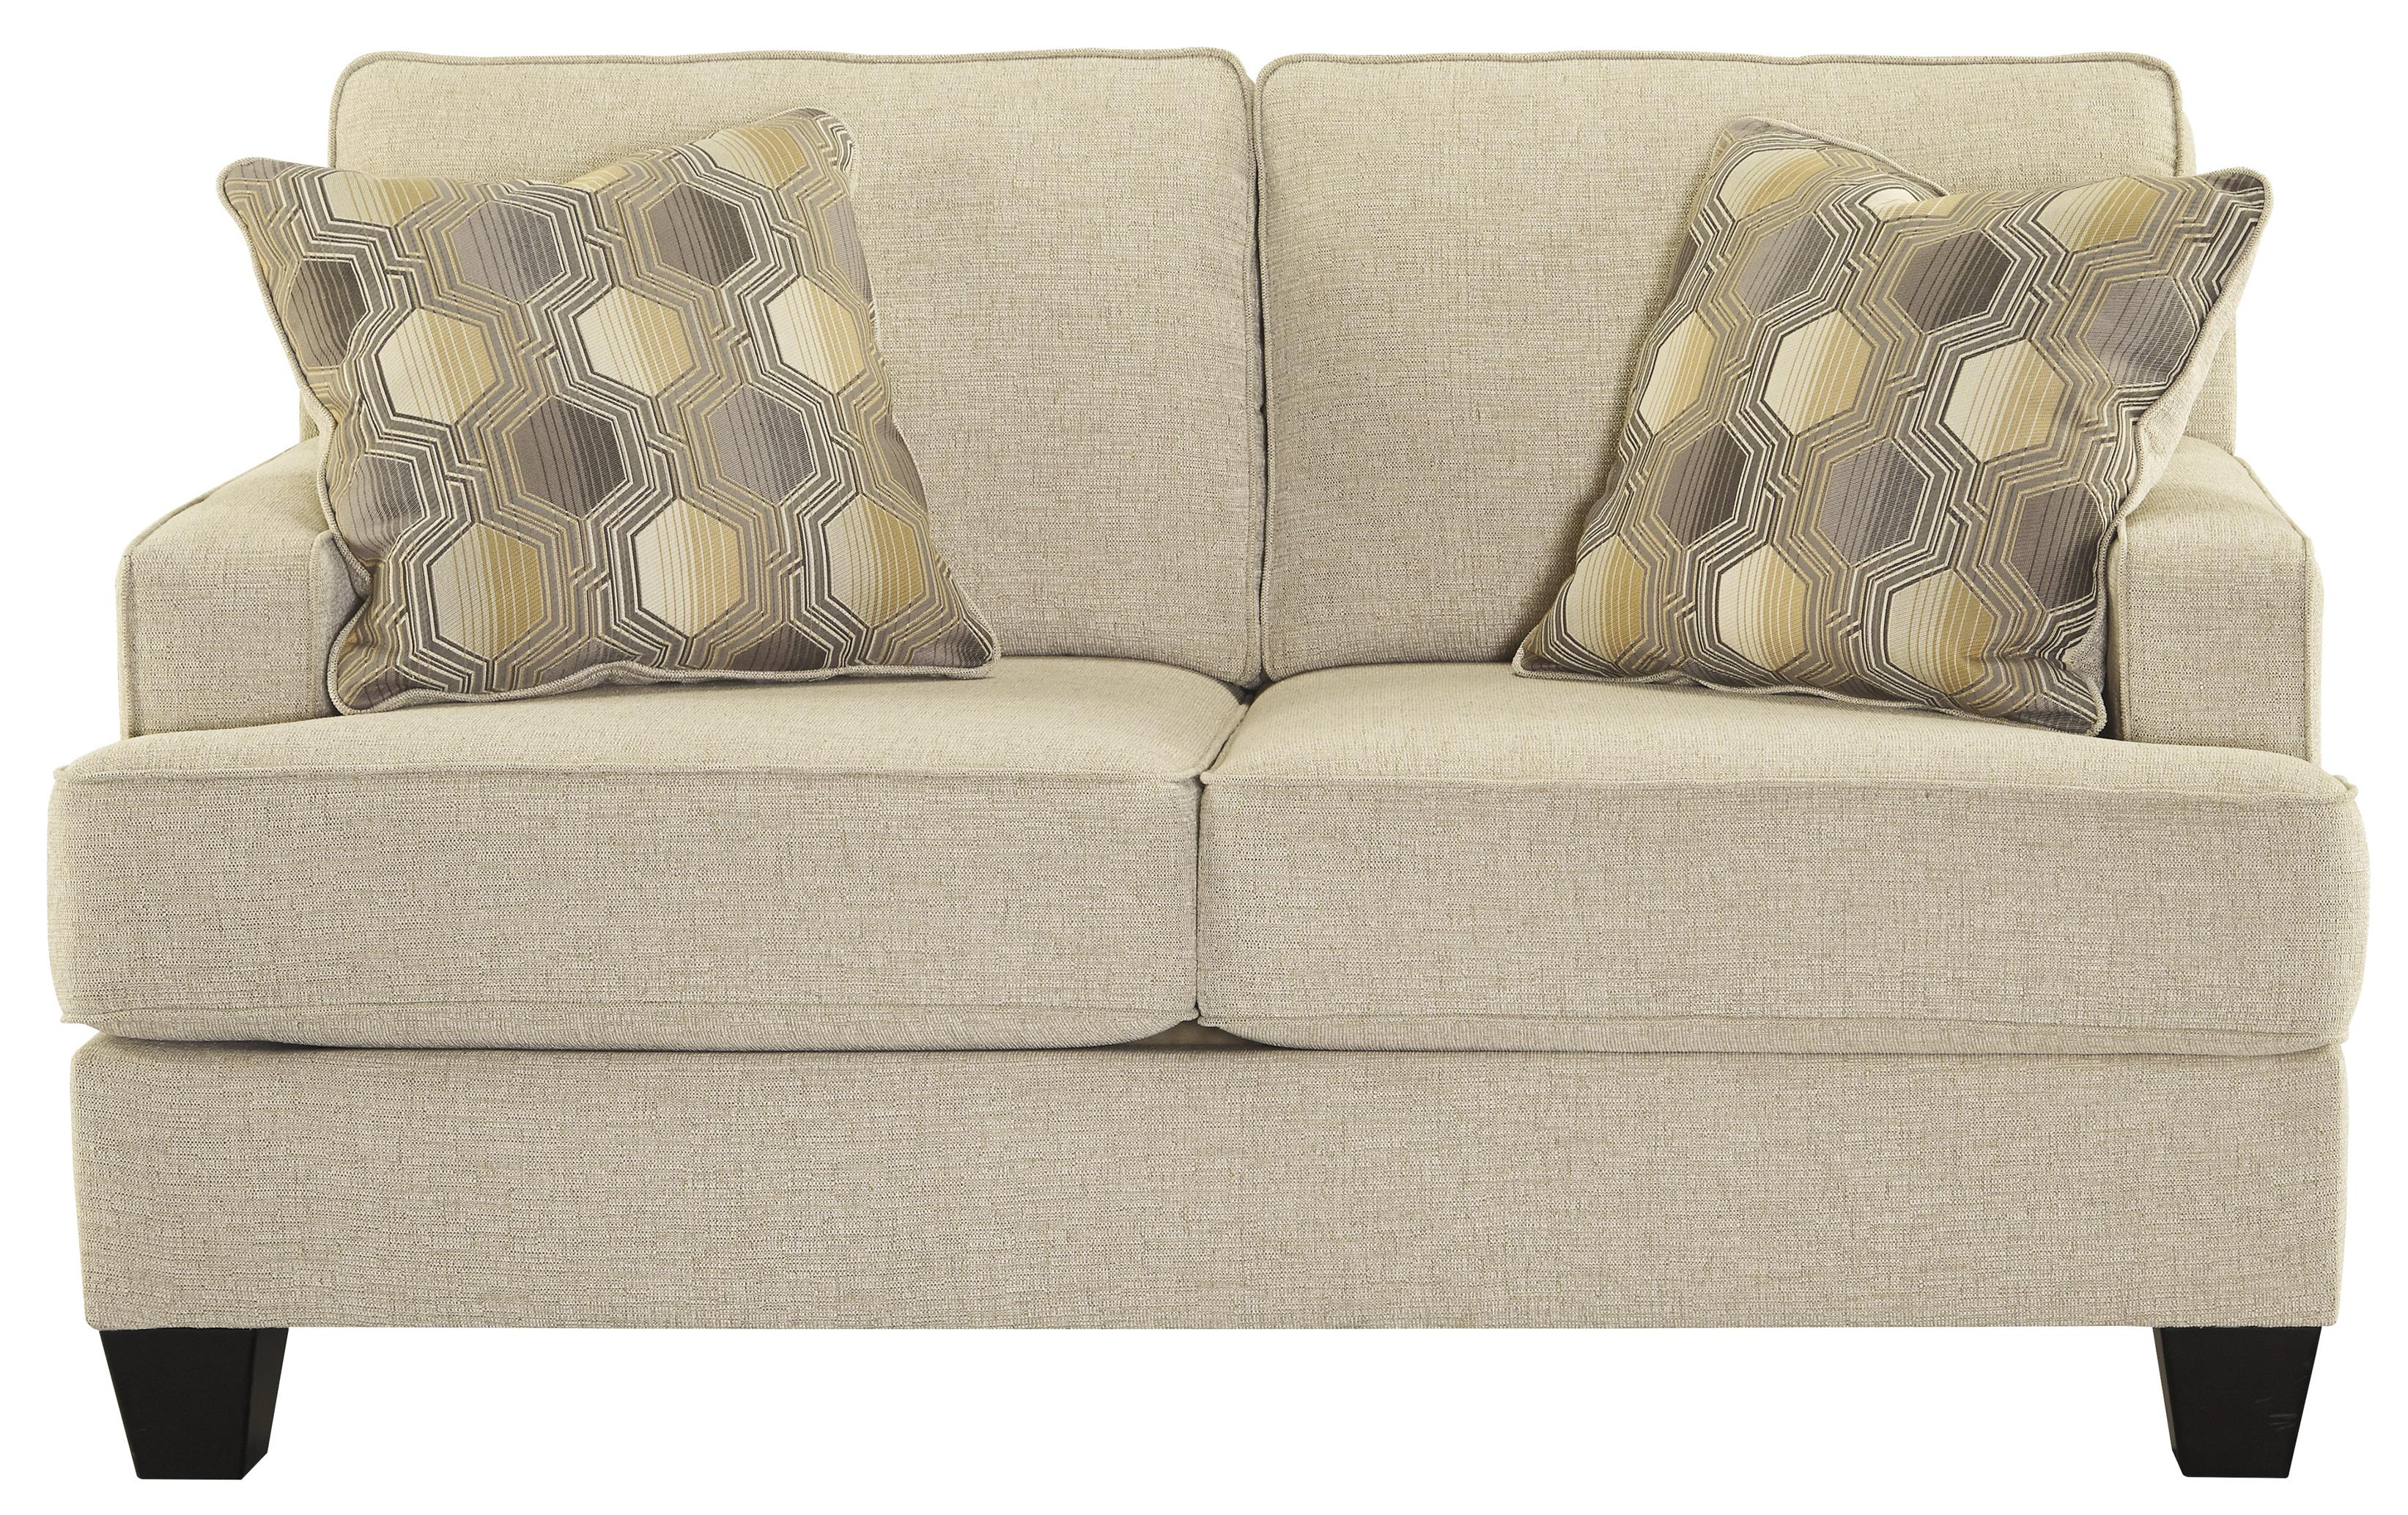 Ashley/Benchcraft Brielyn Loveseat - Item Number: 6140235